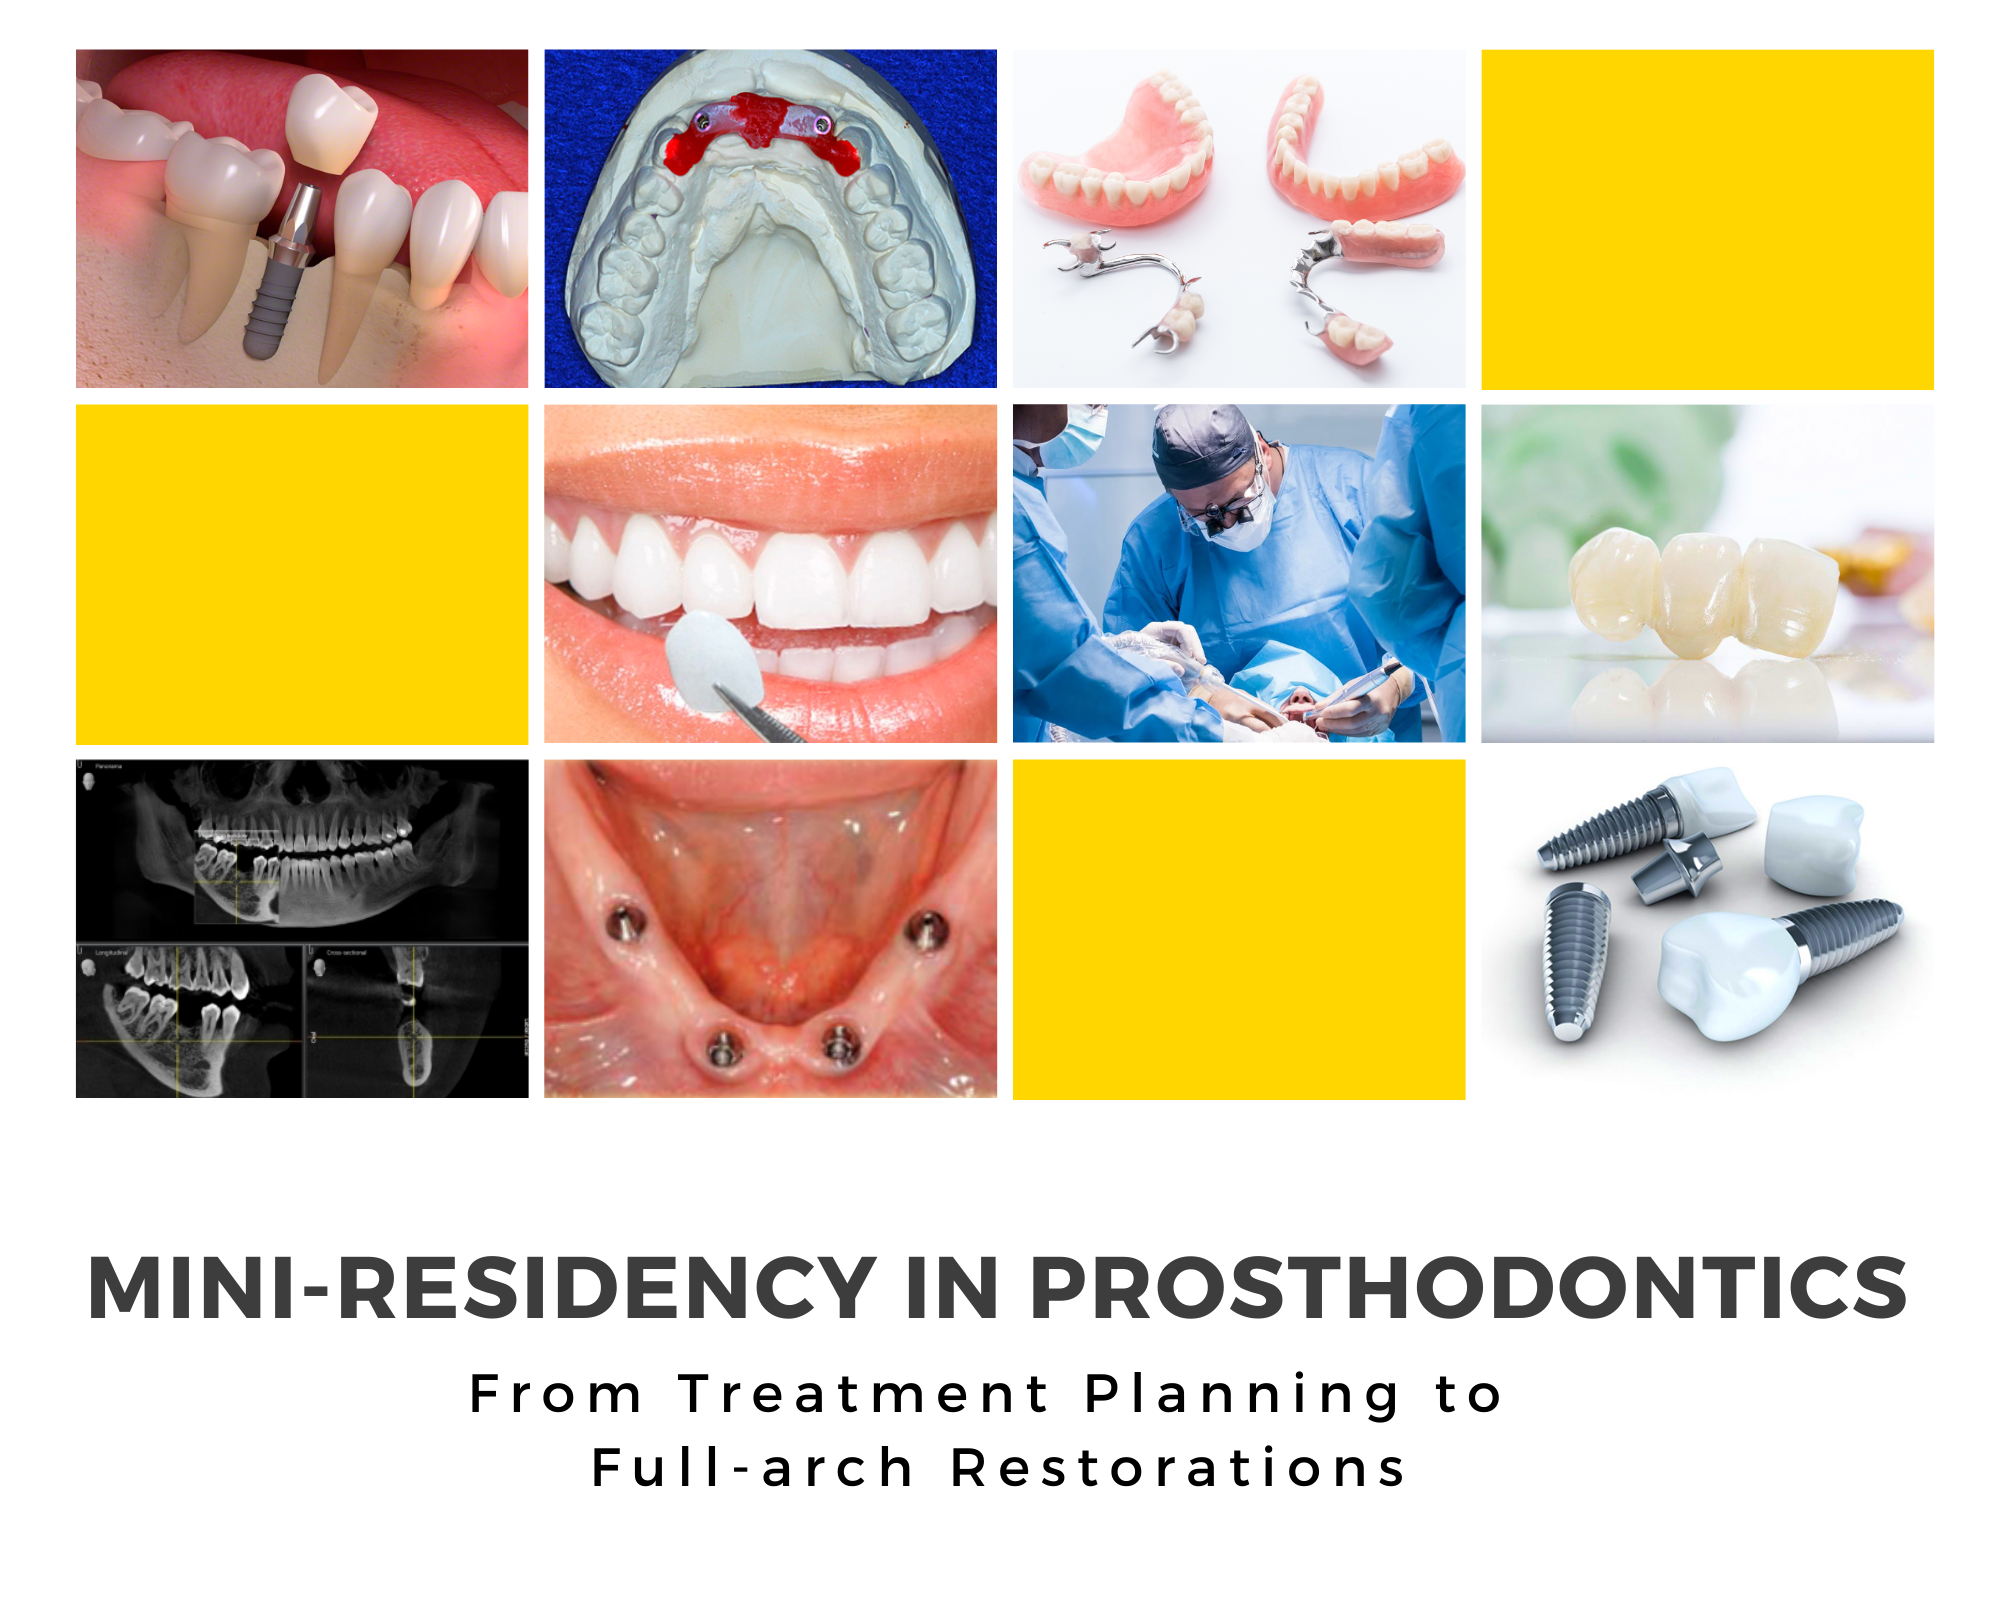 Mini-residency_in_prosthodontics